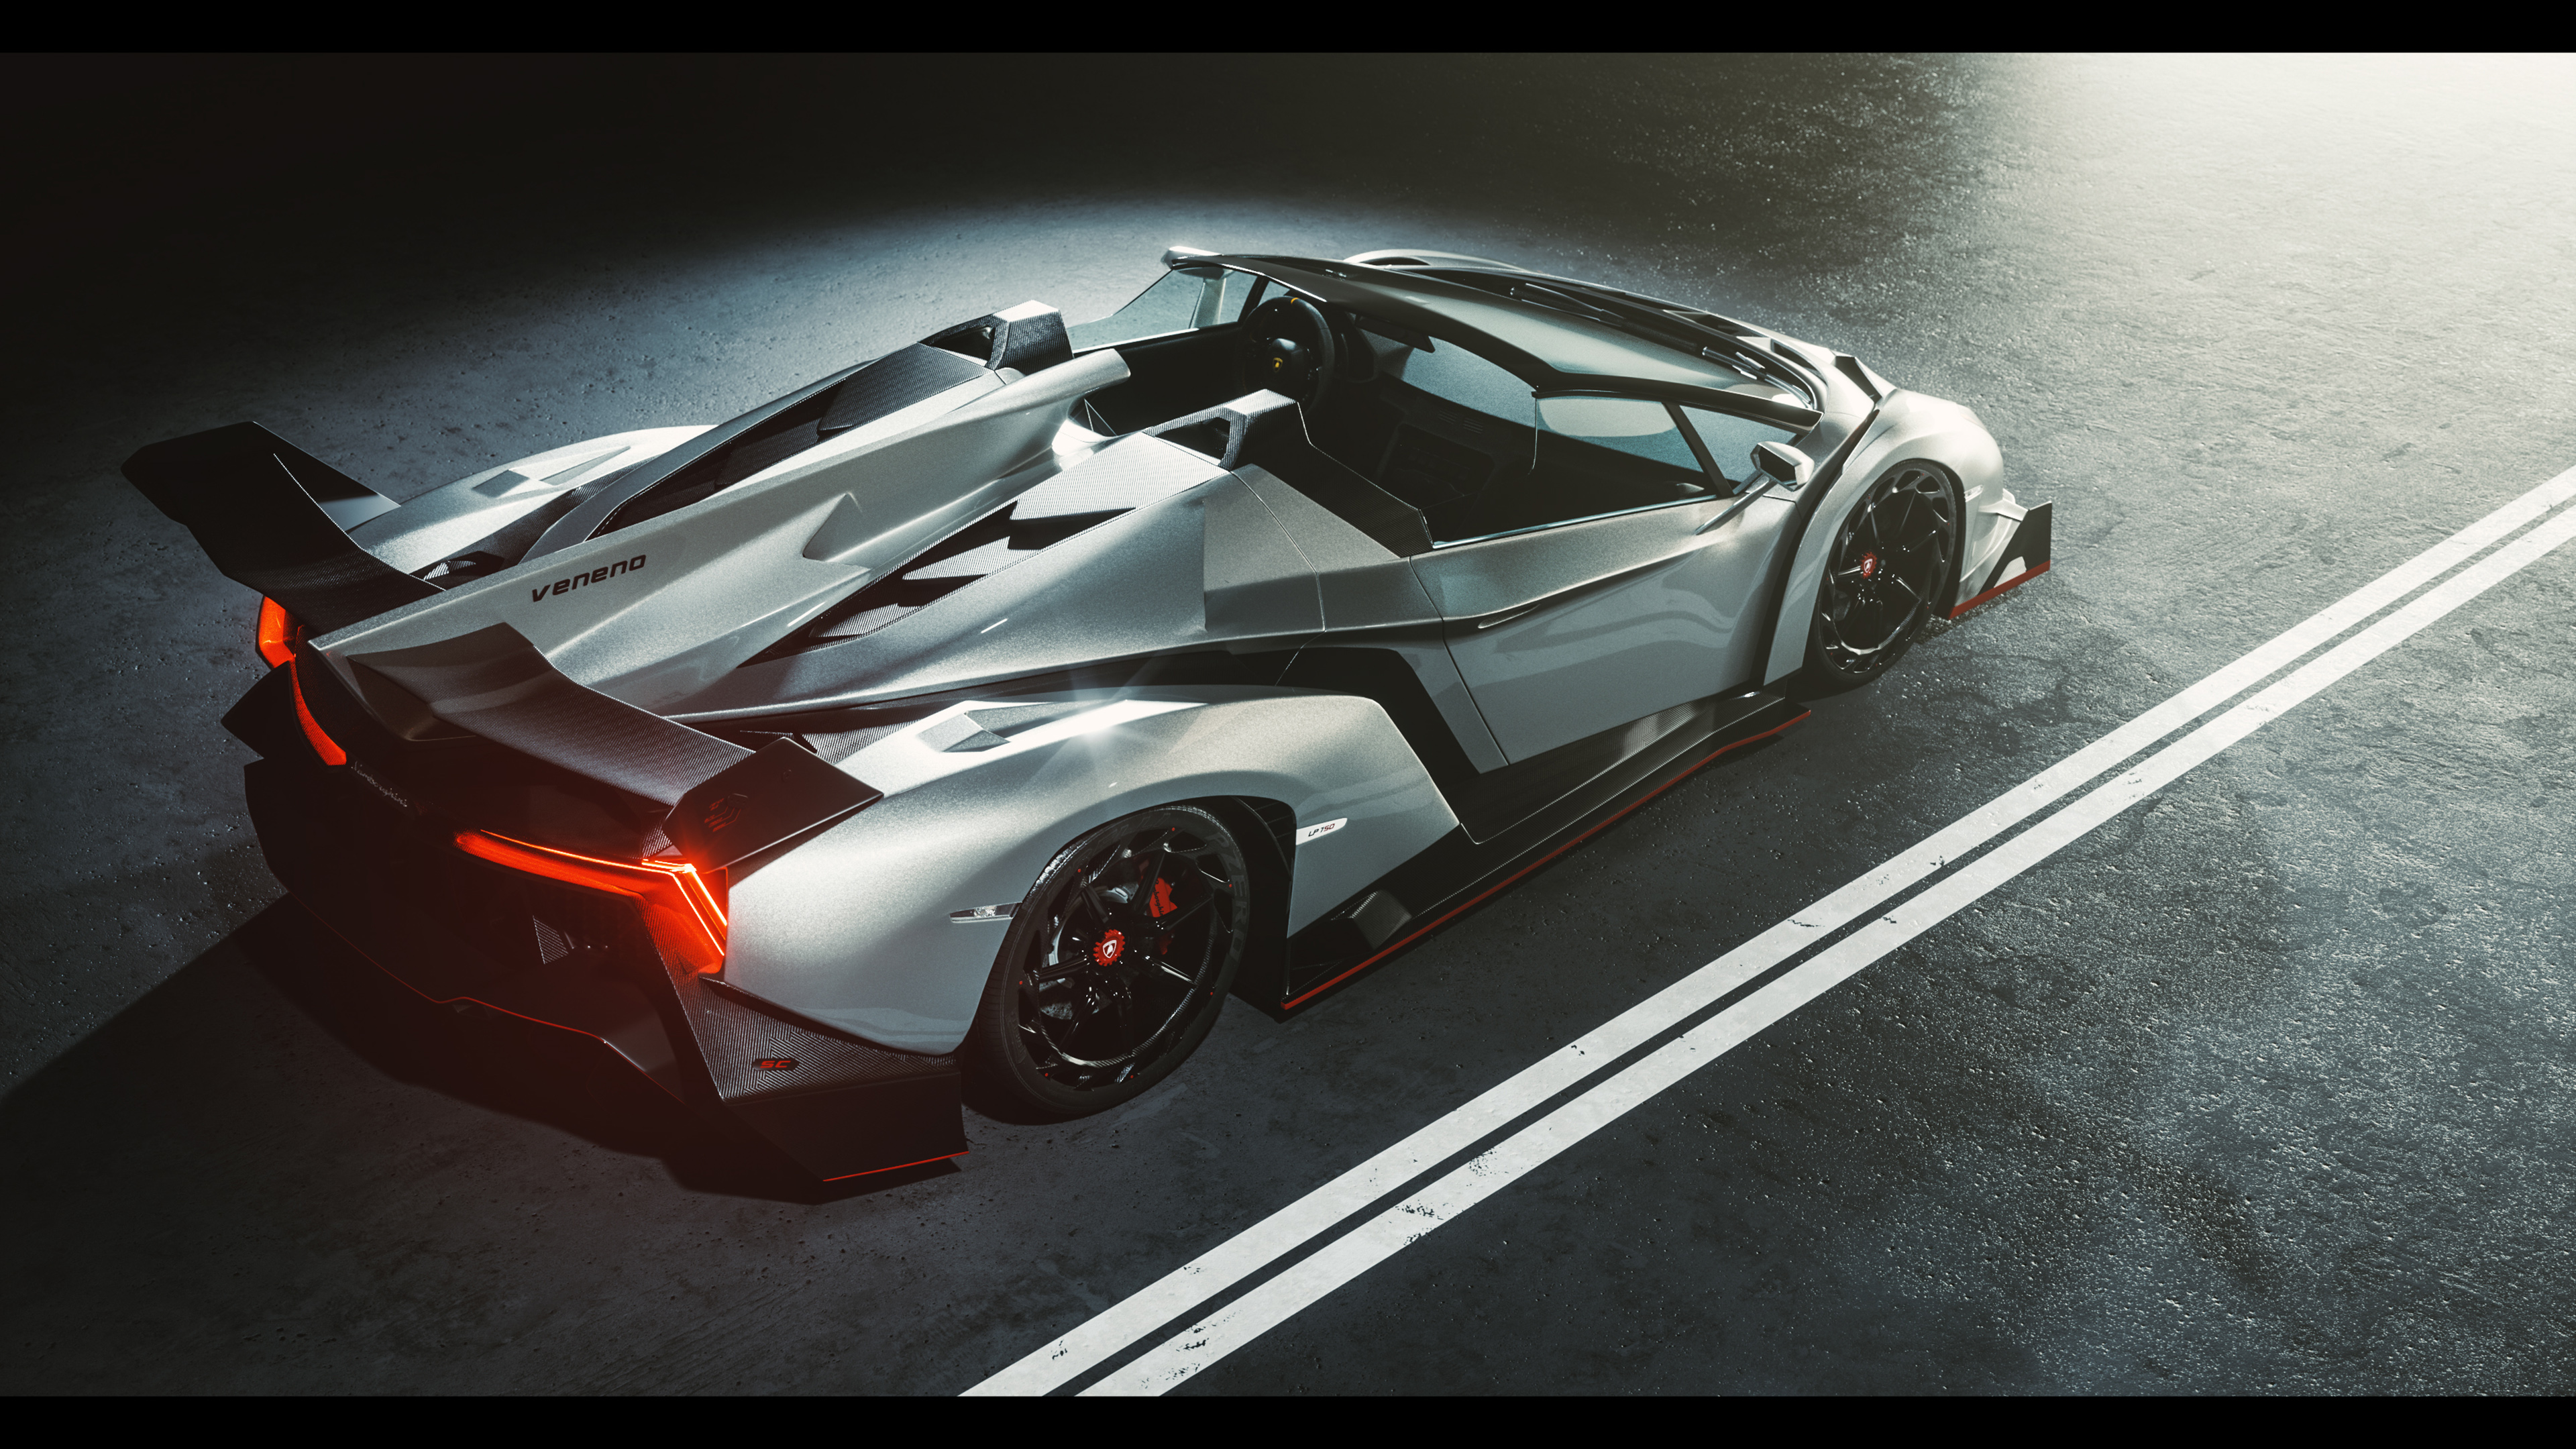 Top Hd Wallpapers Cars Wallpapers Desktop Hd: Lamborghini Veneno 4K Wallpaper